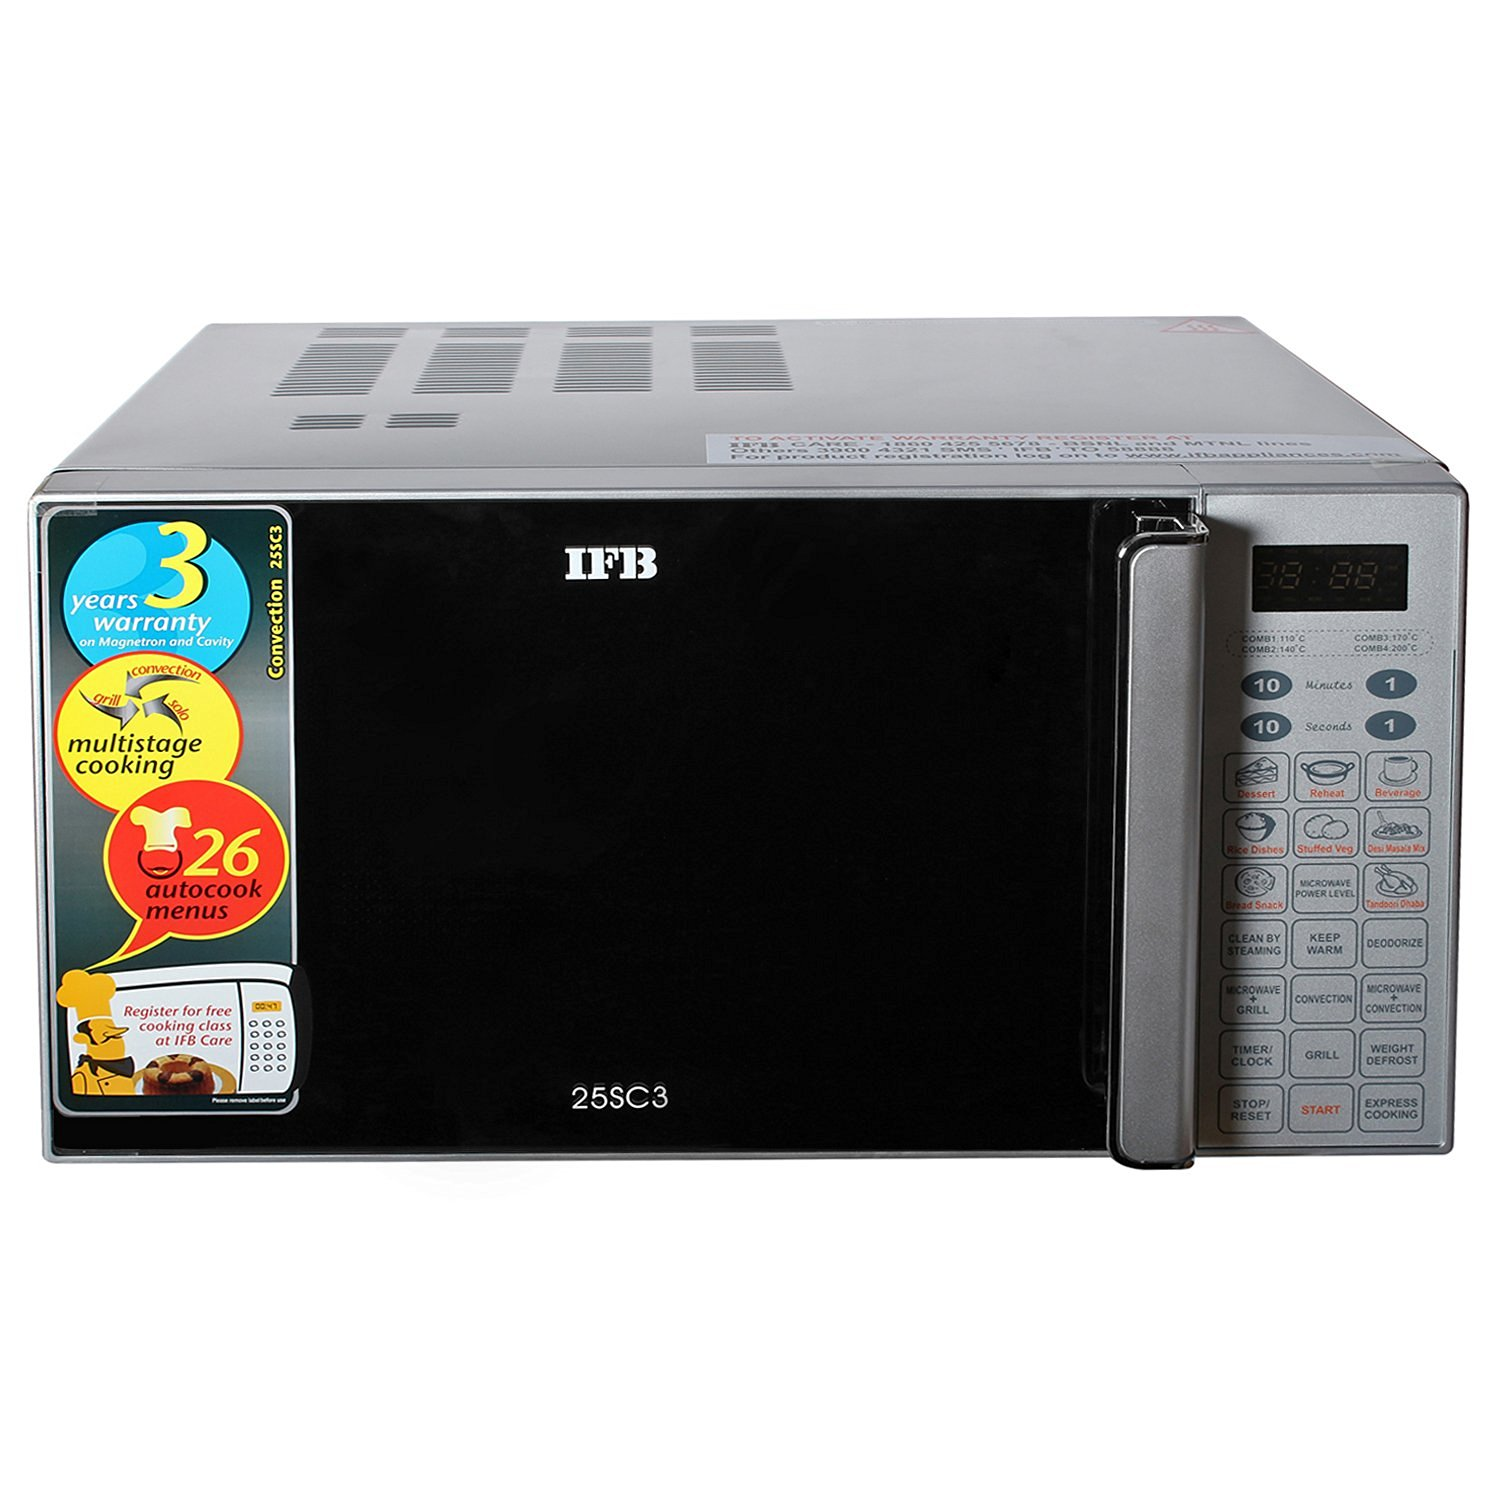 Ifb 25sc3 25 Litre 1400 Watt Convection Microwave Oven